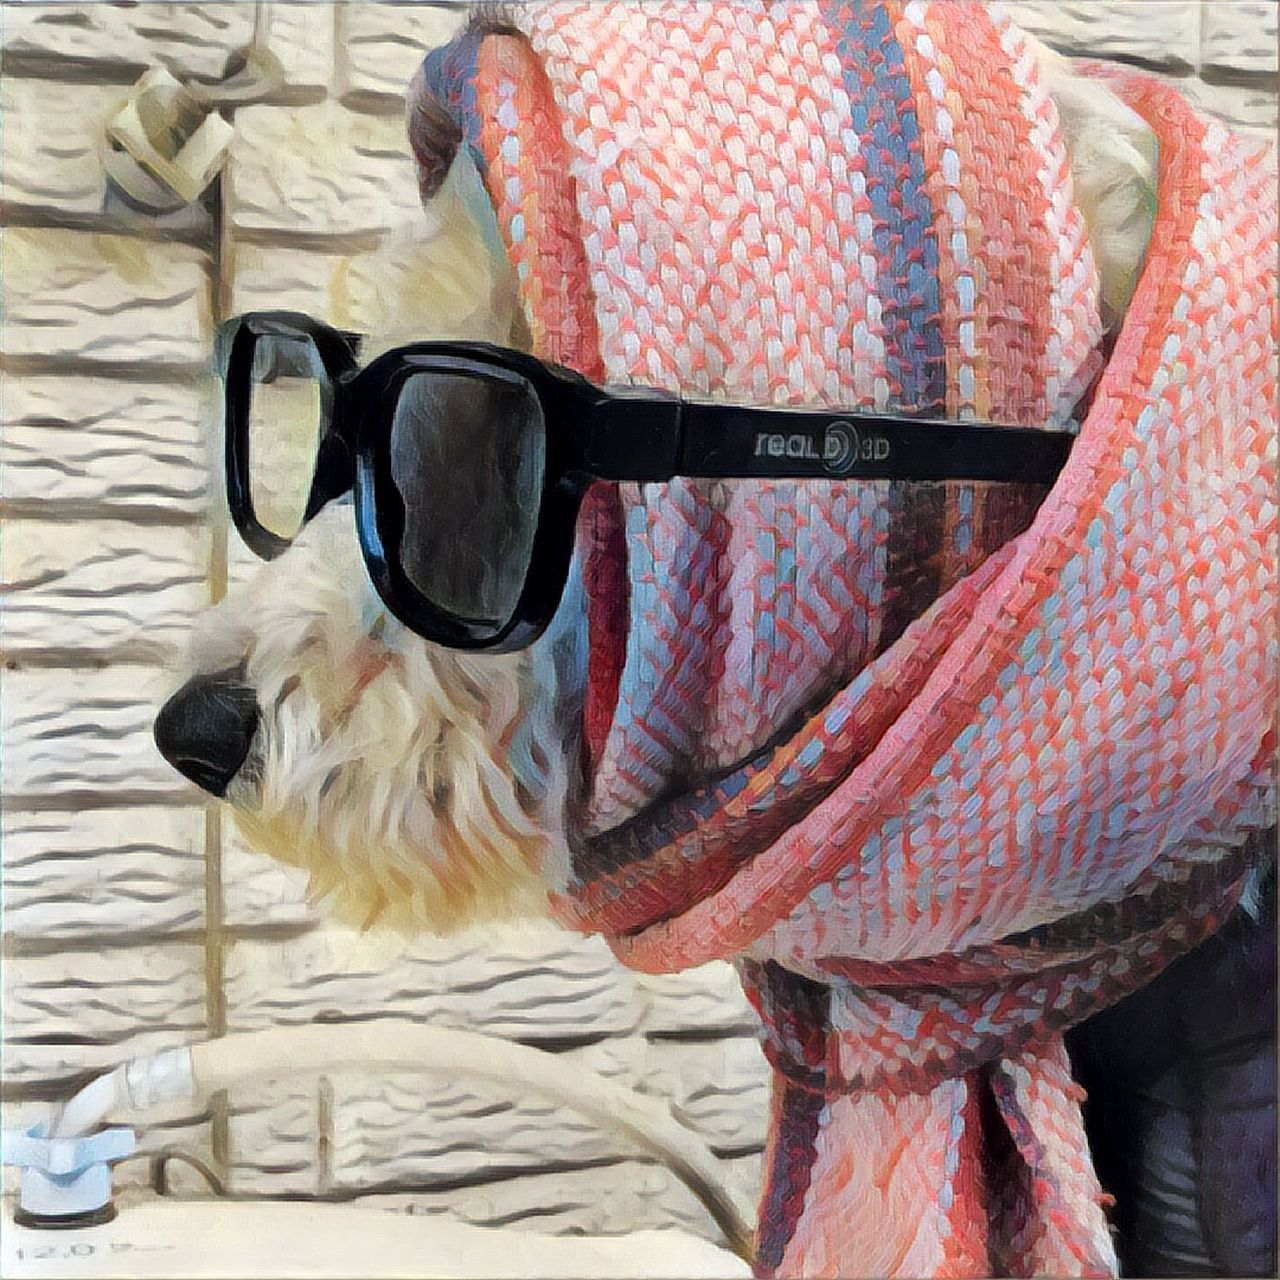 domestic animals, pets, dog, one animal, animal themes, mammal, sunglasses, day, no people, pet clothing, outdoors